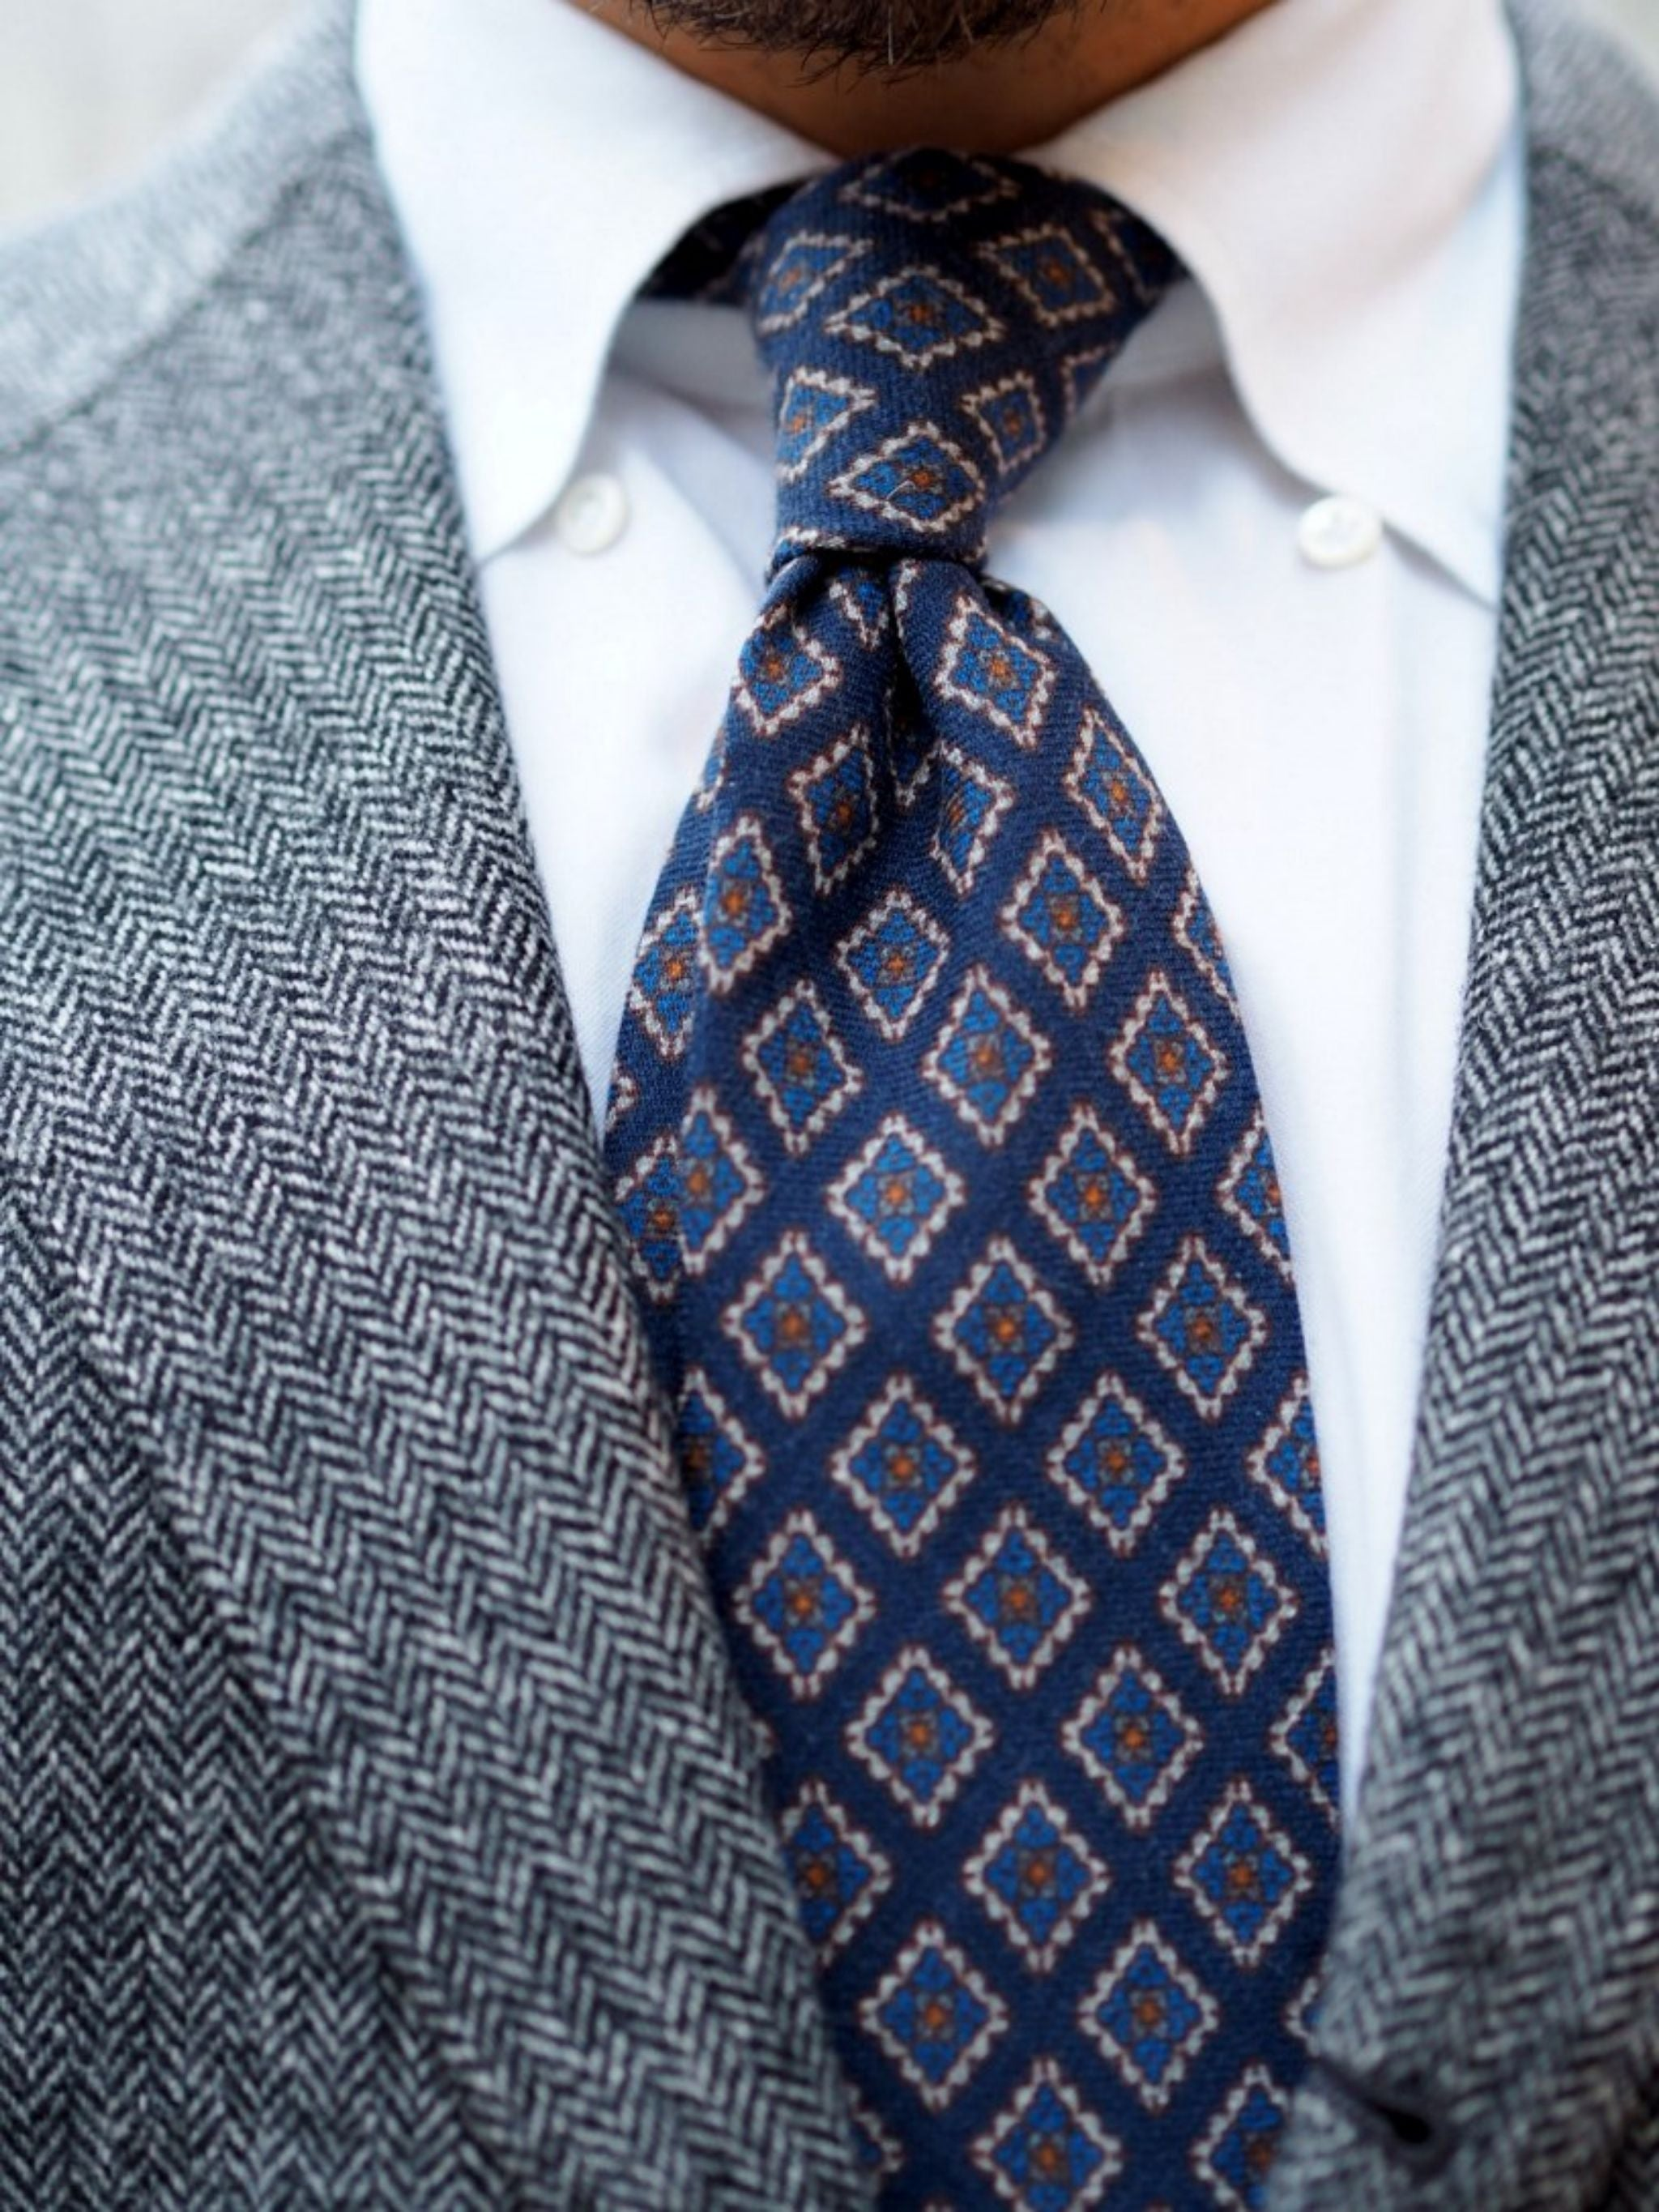 Autumnal business casual outfits - the blue wool tie with double four-in-hand knot